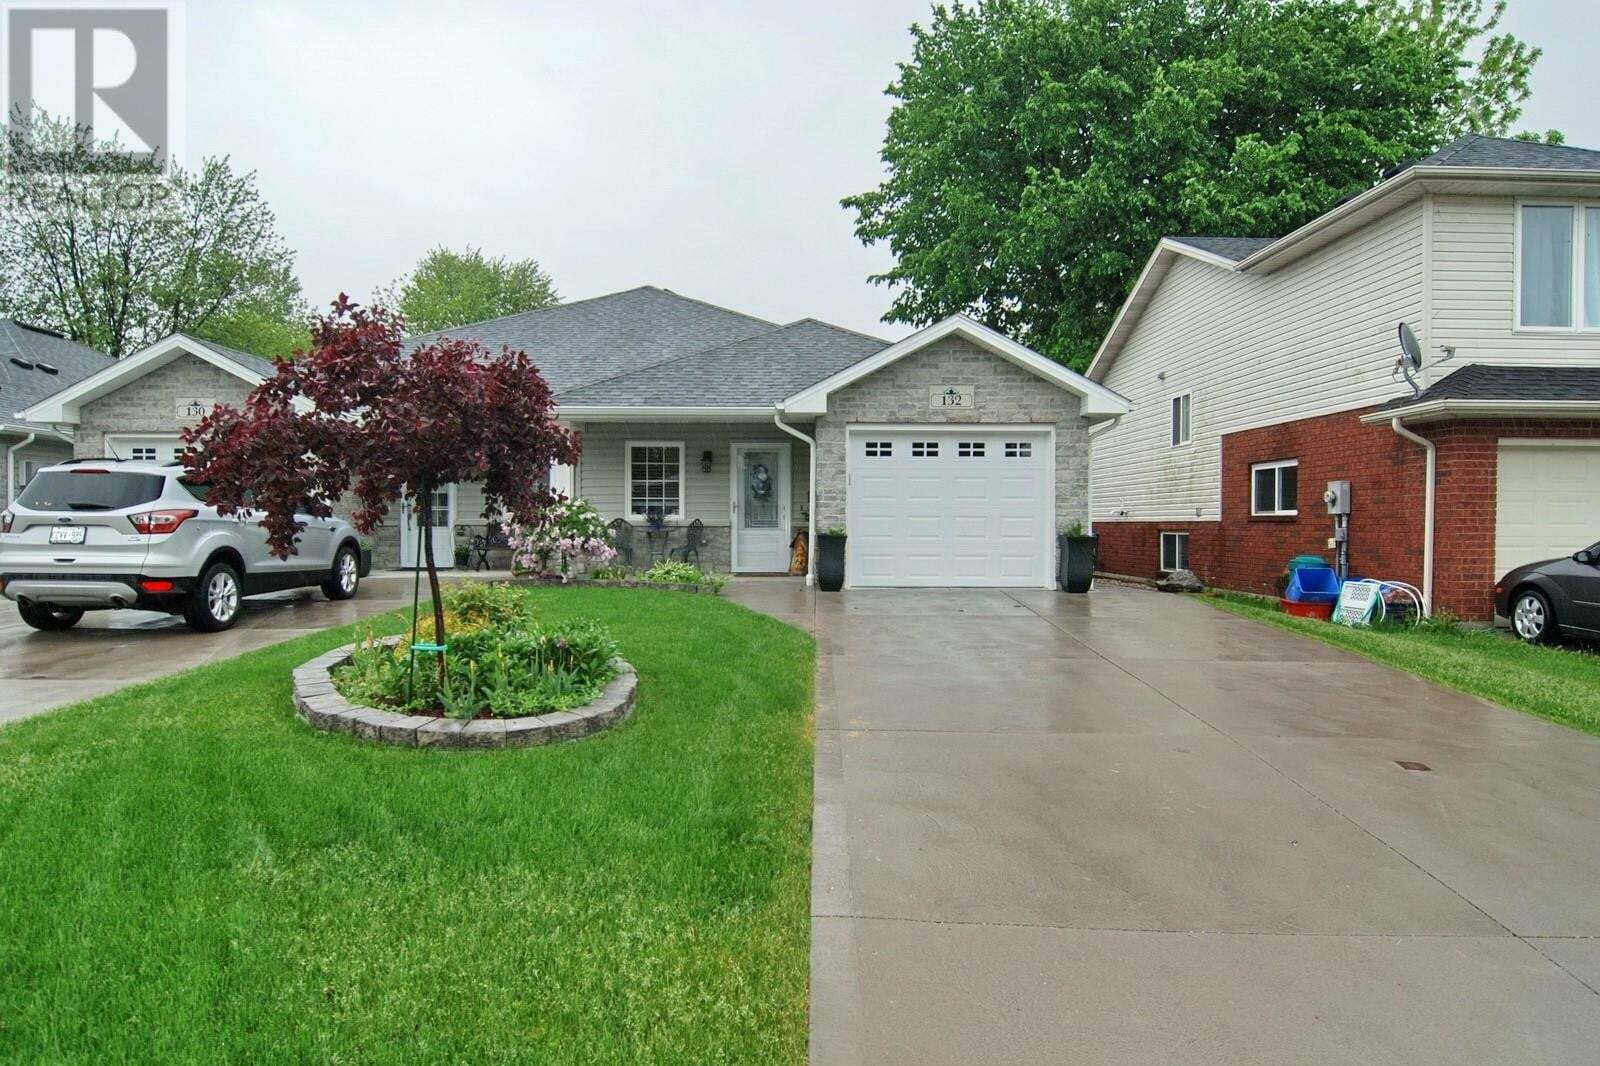 House for sale at 132 Forhan  Amherstburg Ontario - MLS: 20006097